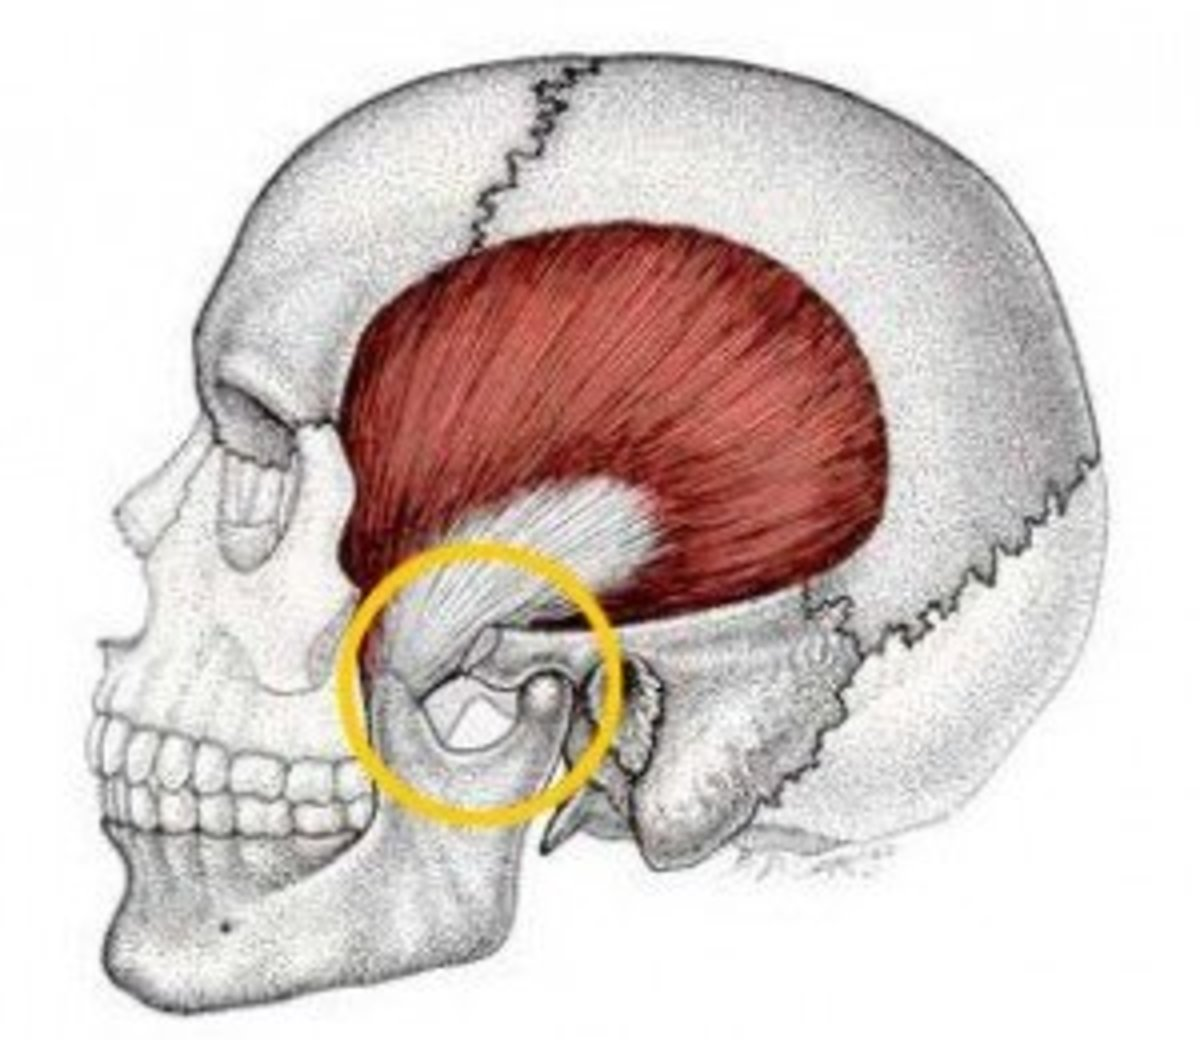 The Temporomandibular Joint